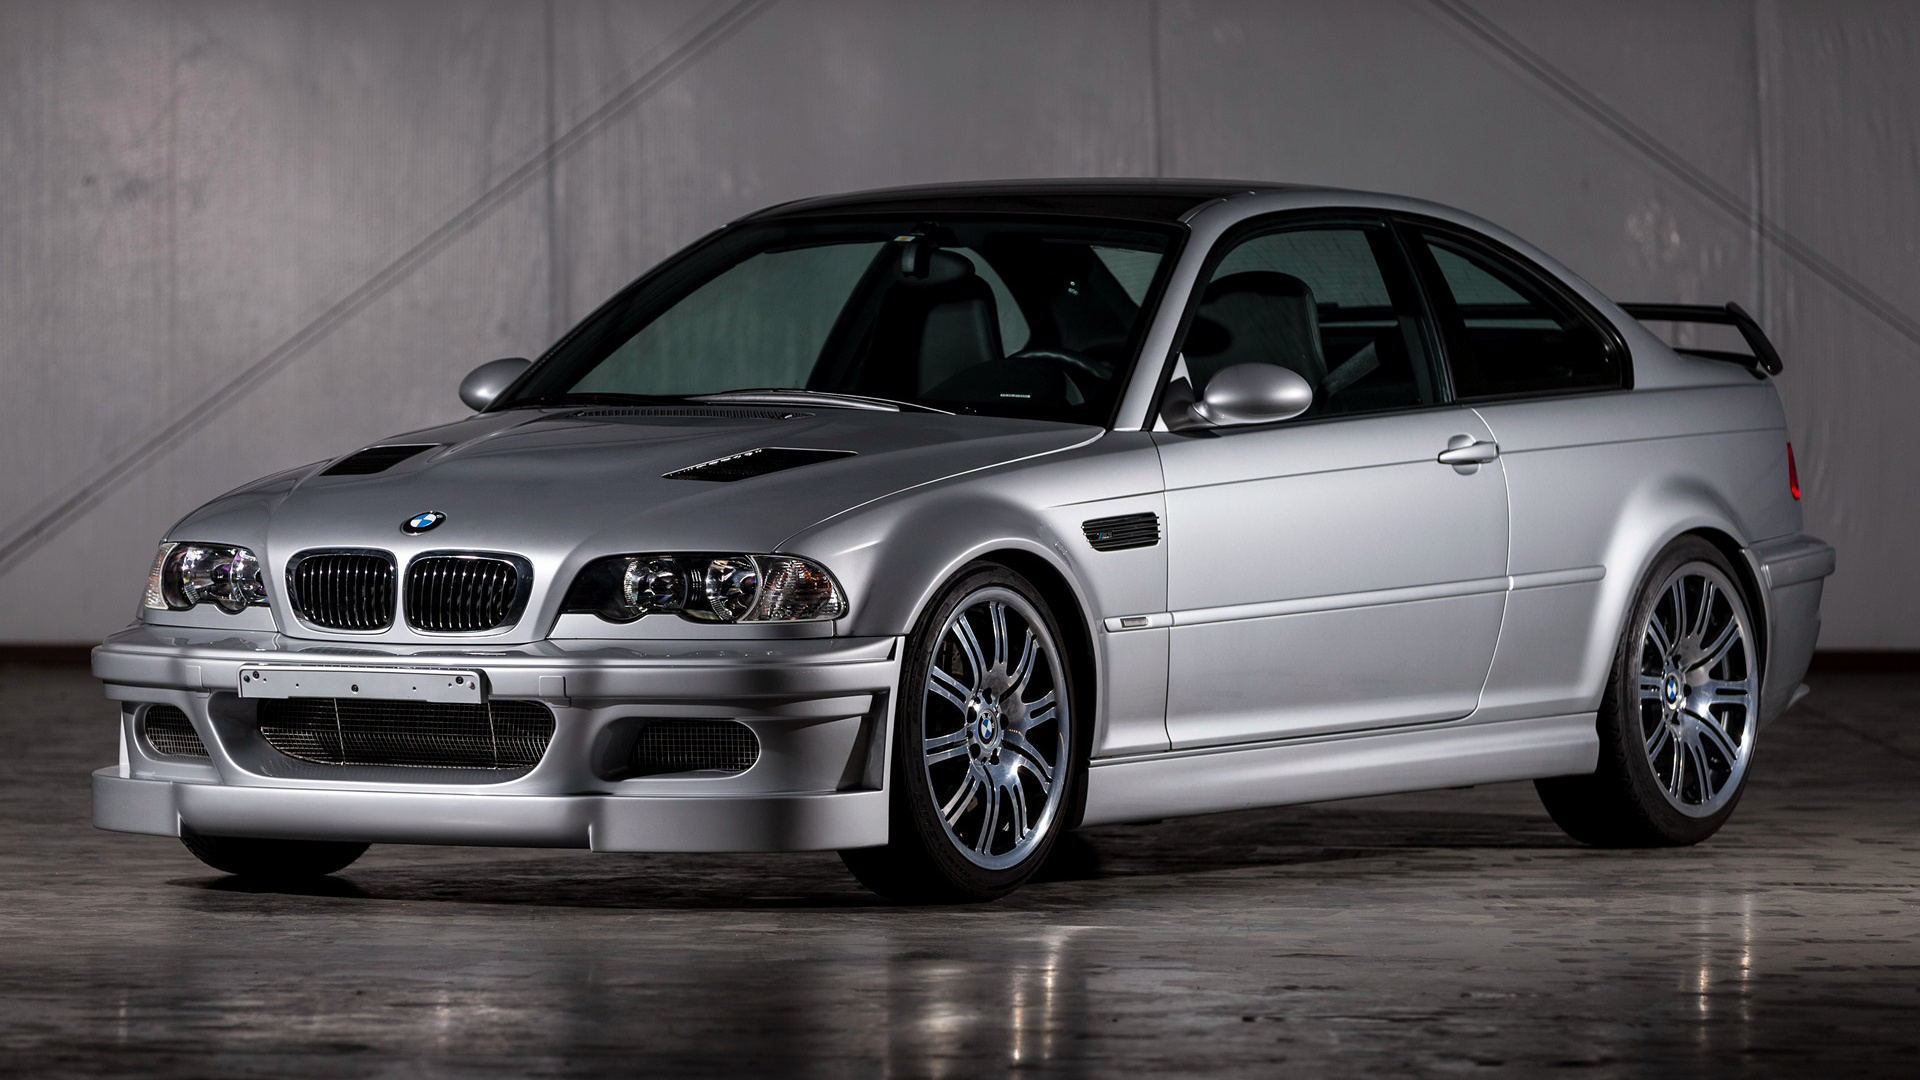 Bmw M3 Gtr Coupe Road Version 2001 Wallpapers And Hd Images Car